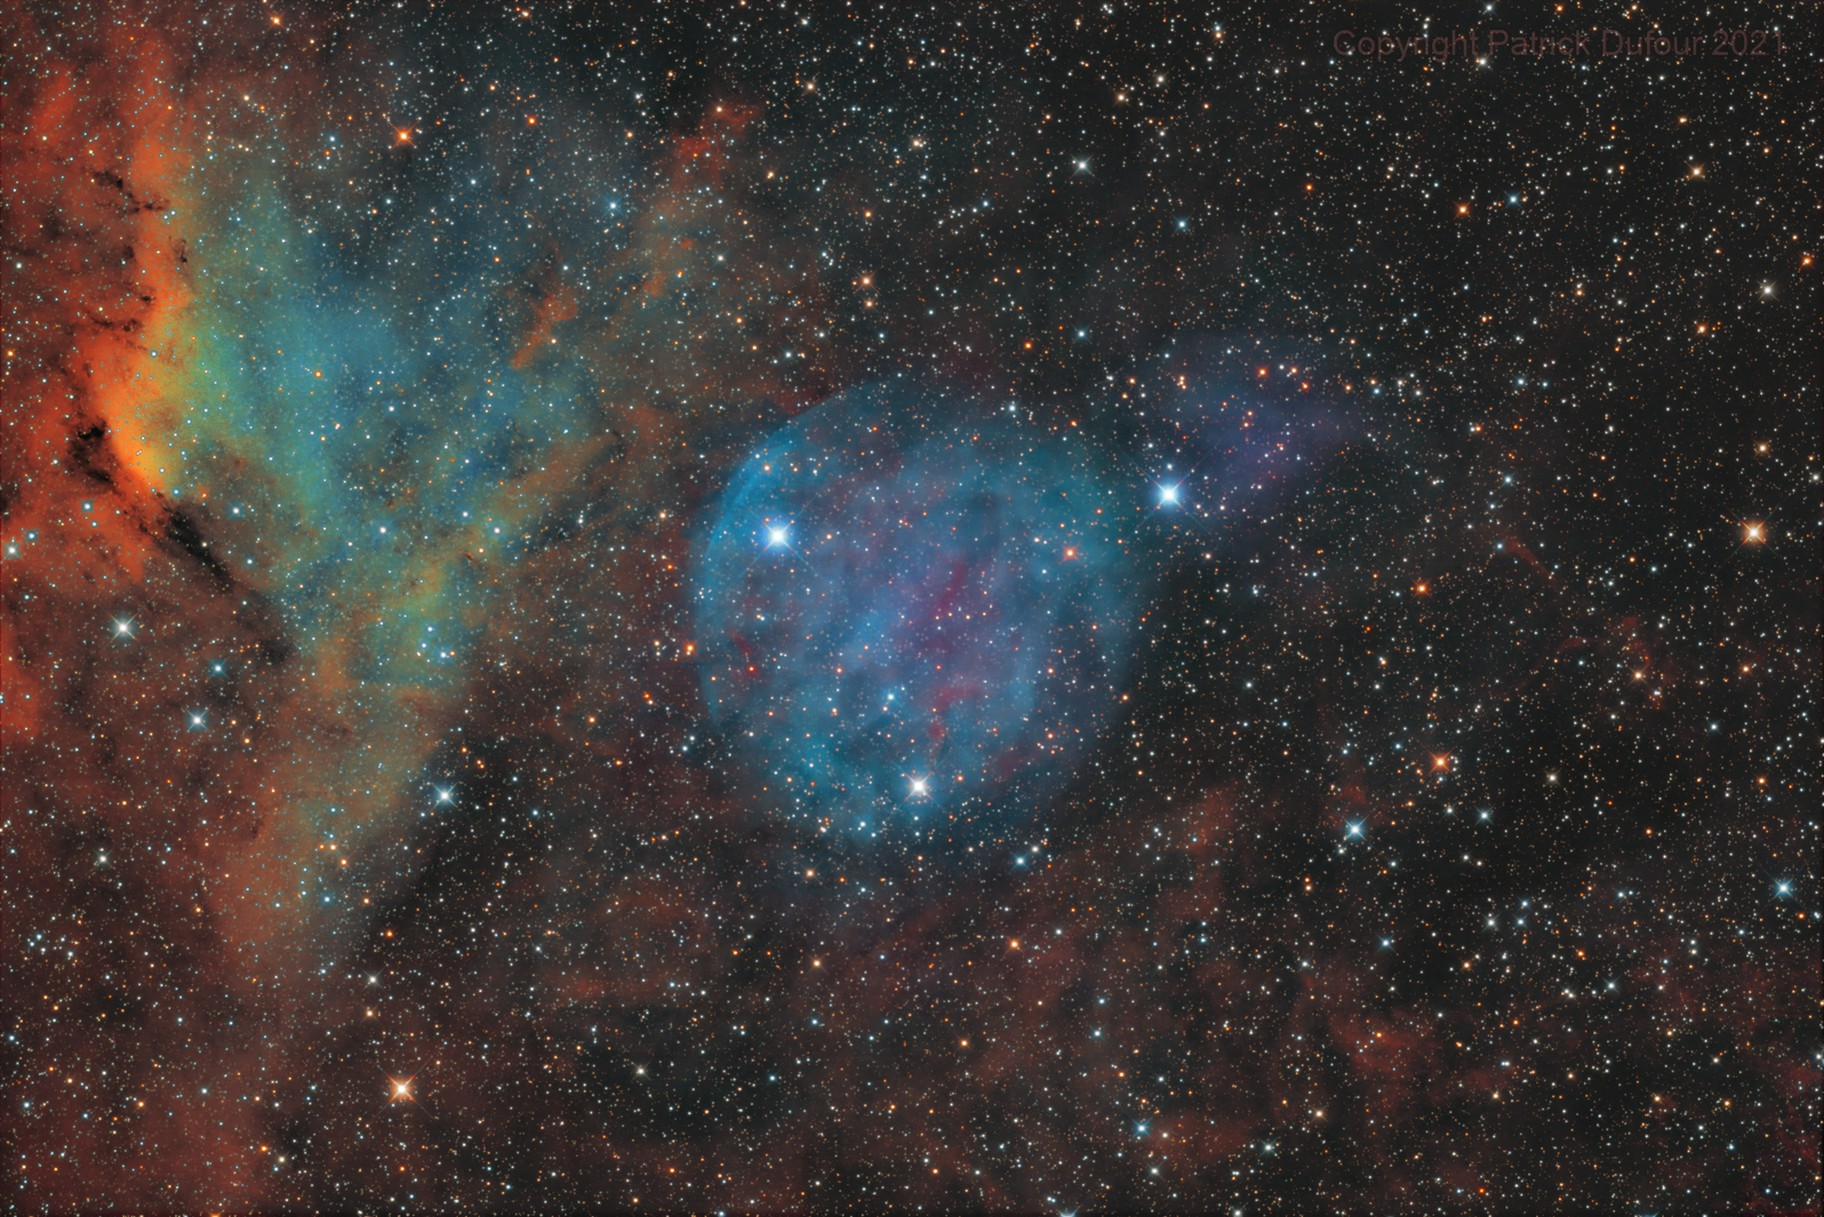 PaRasMoMi-1 Large Bubble Nebula in Monoceros  - New Discovery!!!